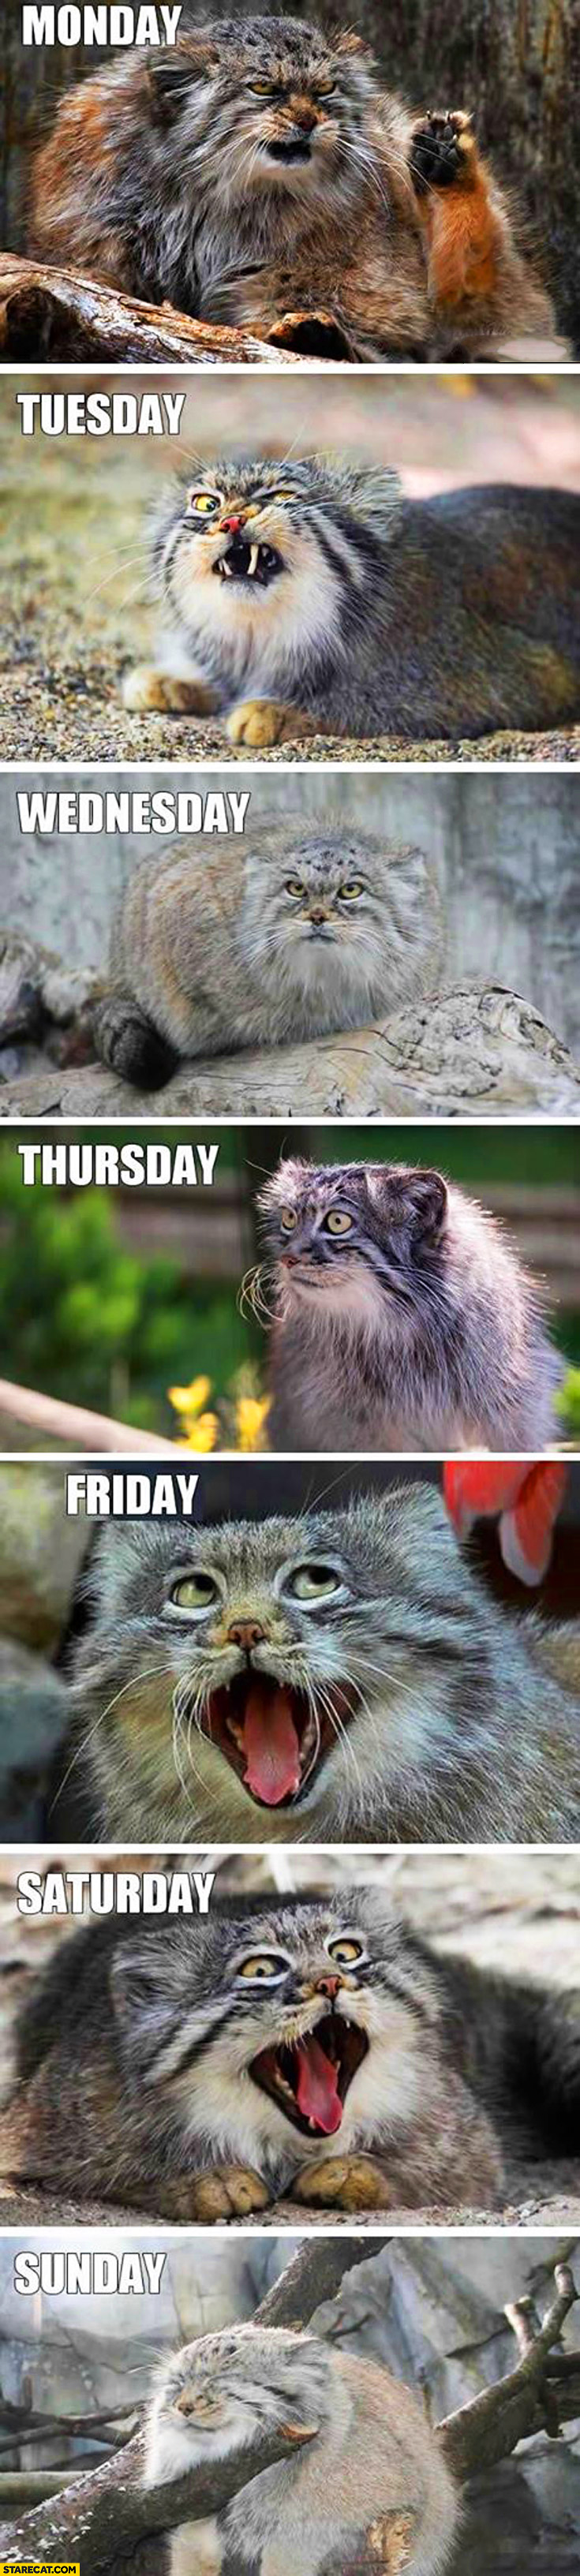 Days of the week cat